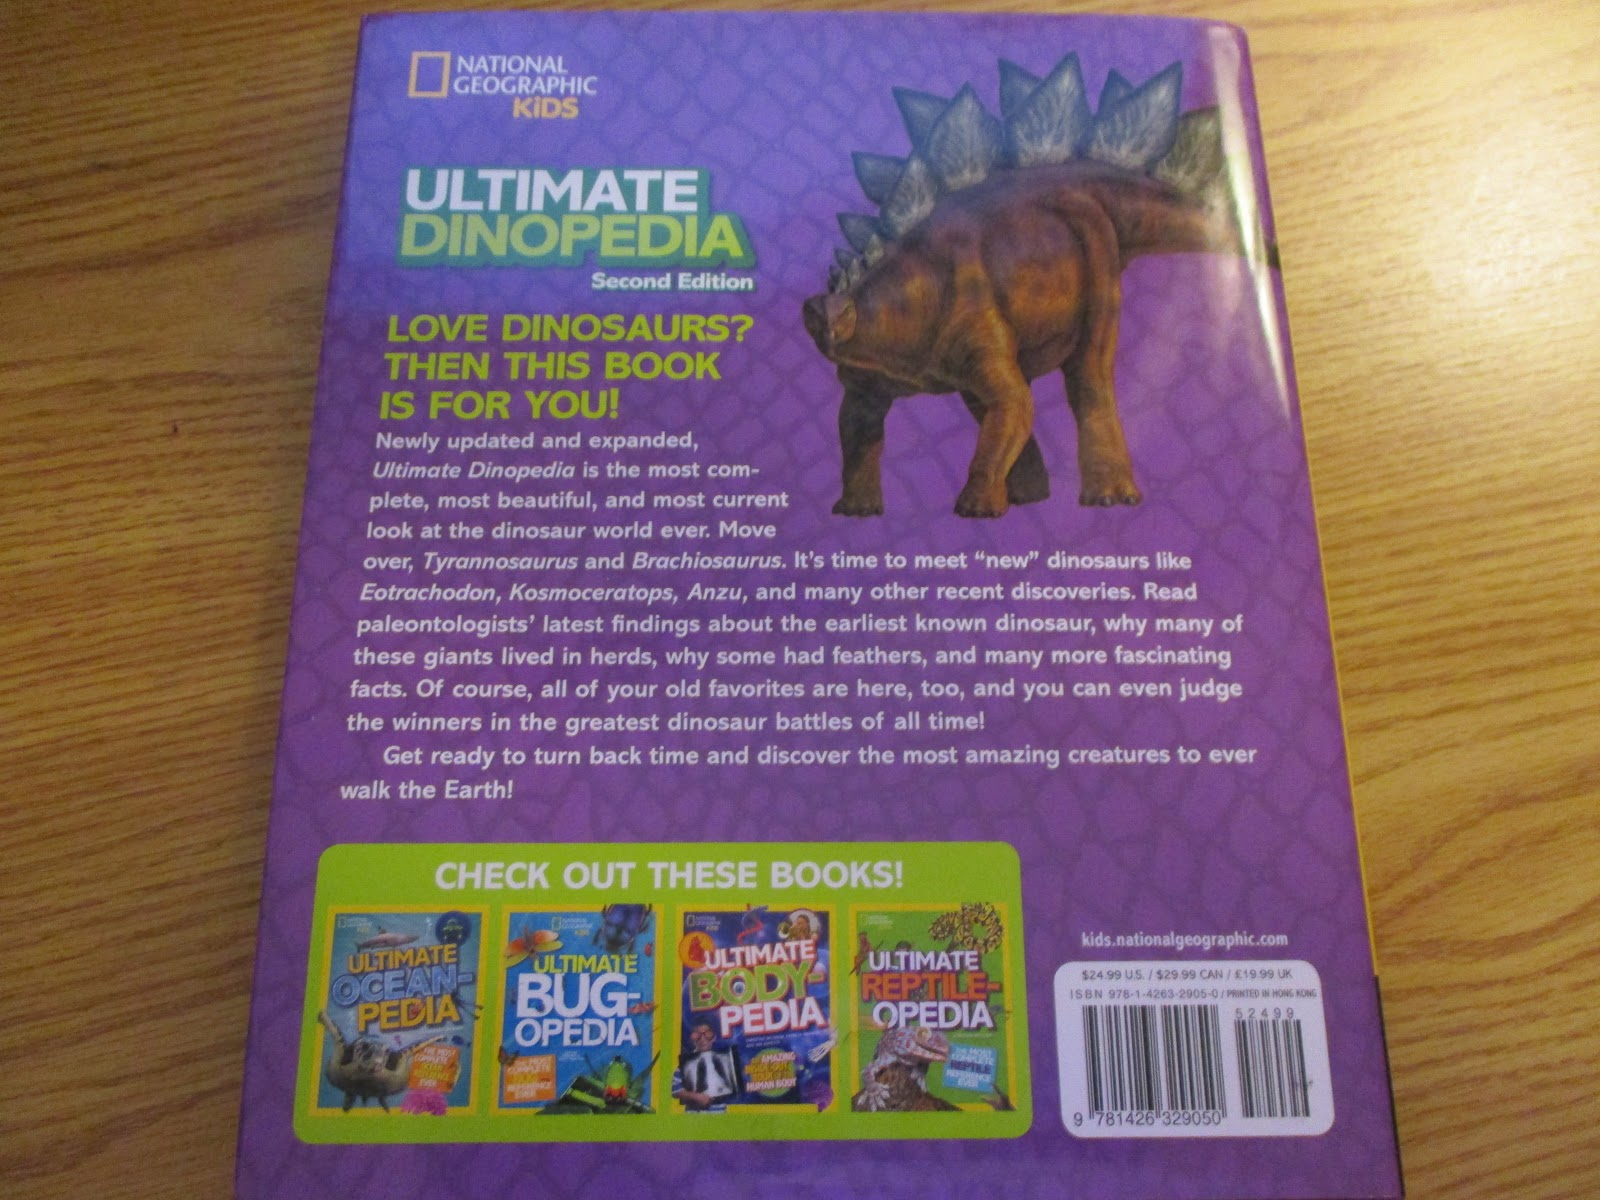 Toys & Hobbies Action Figures Audacious Triceratops Dinosaur Family Toys Cheapest Price From Our Site